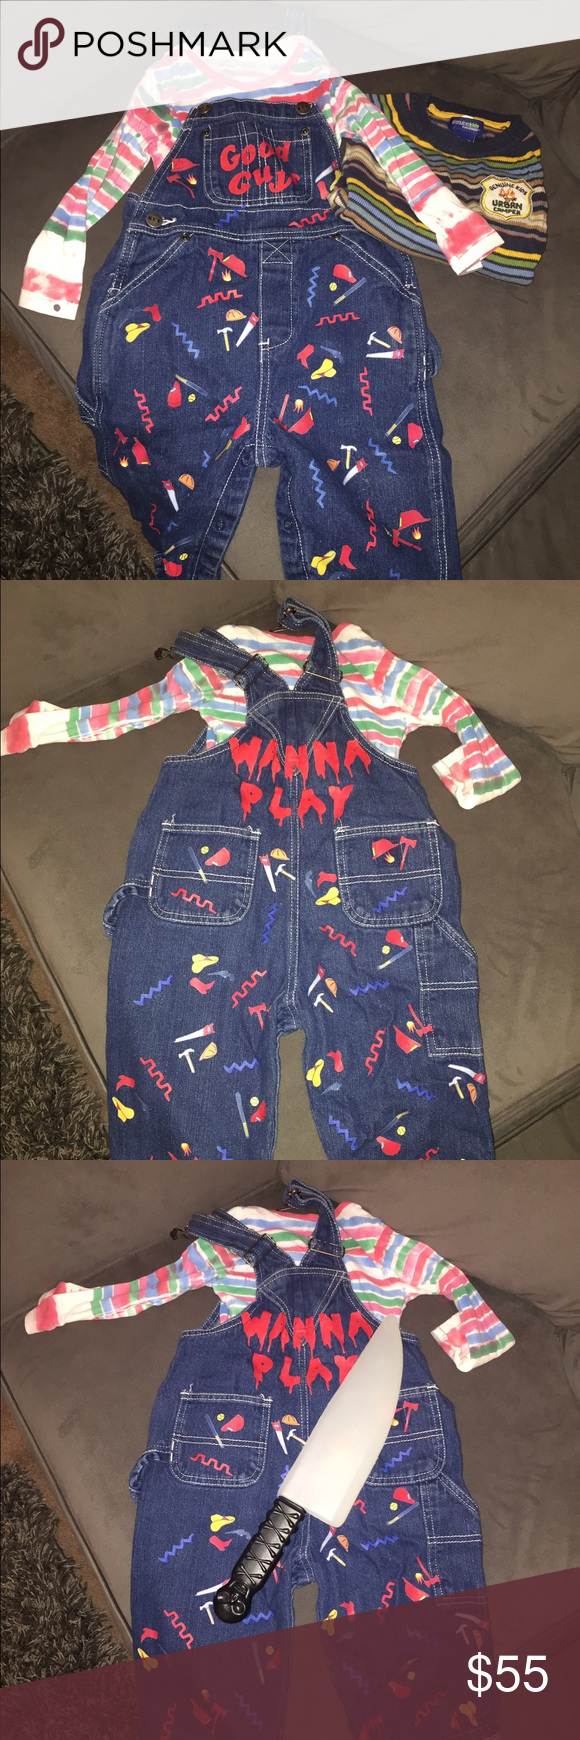 9f0f460c Chucky Costume/Child's play! Toddler size 18/24 Child's play costume, knife  & orange hair spray included. Other